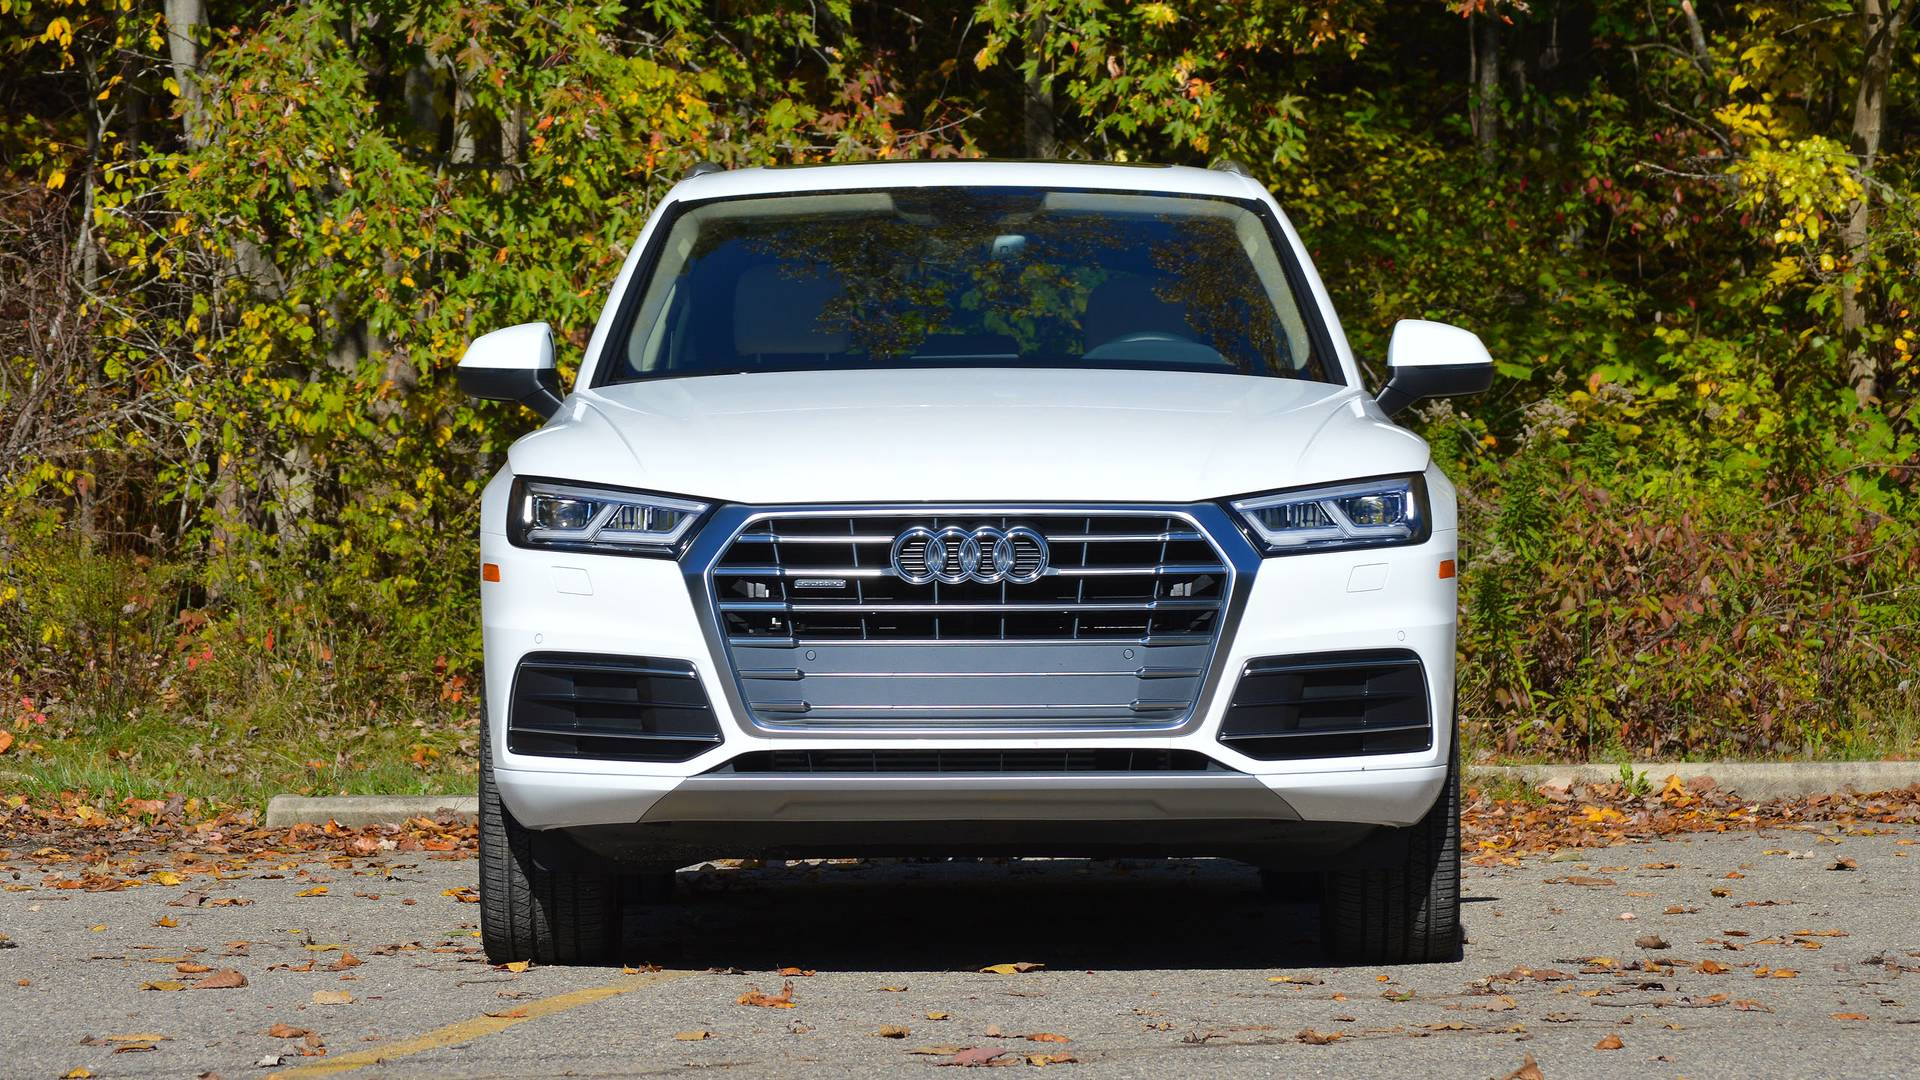 2018 audi sq5 with a 3 0 liter turbocharged v6 boasting 354 hp and 369 lb ft. Black Bedroom Furniture Sets. Home Design Ideas